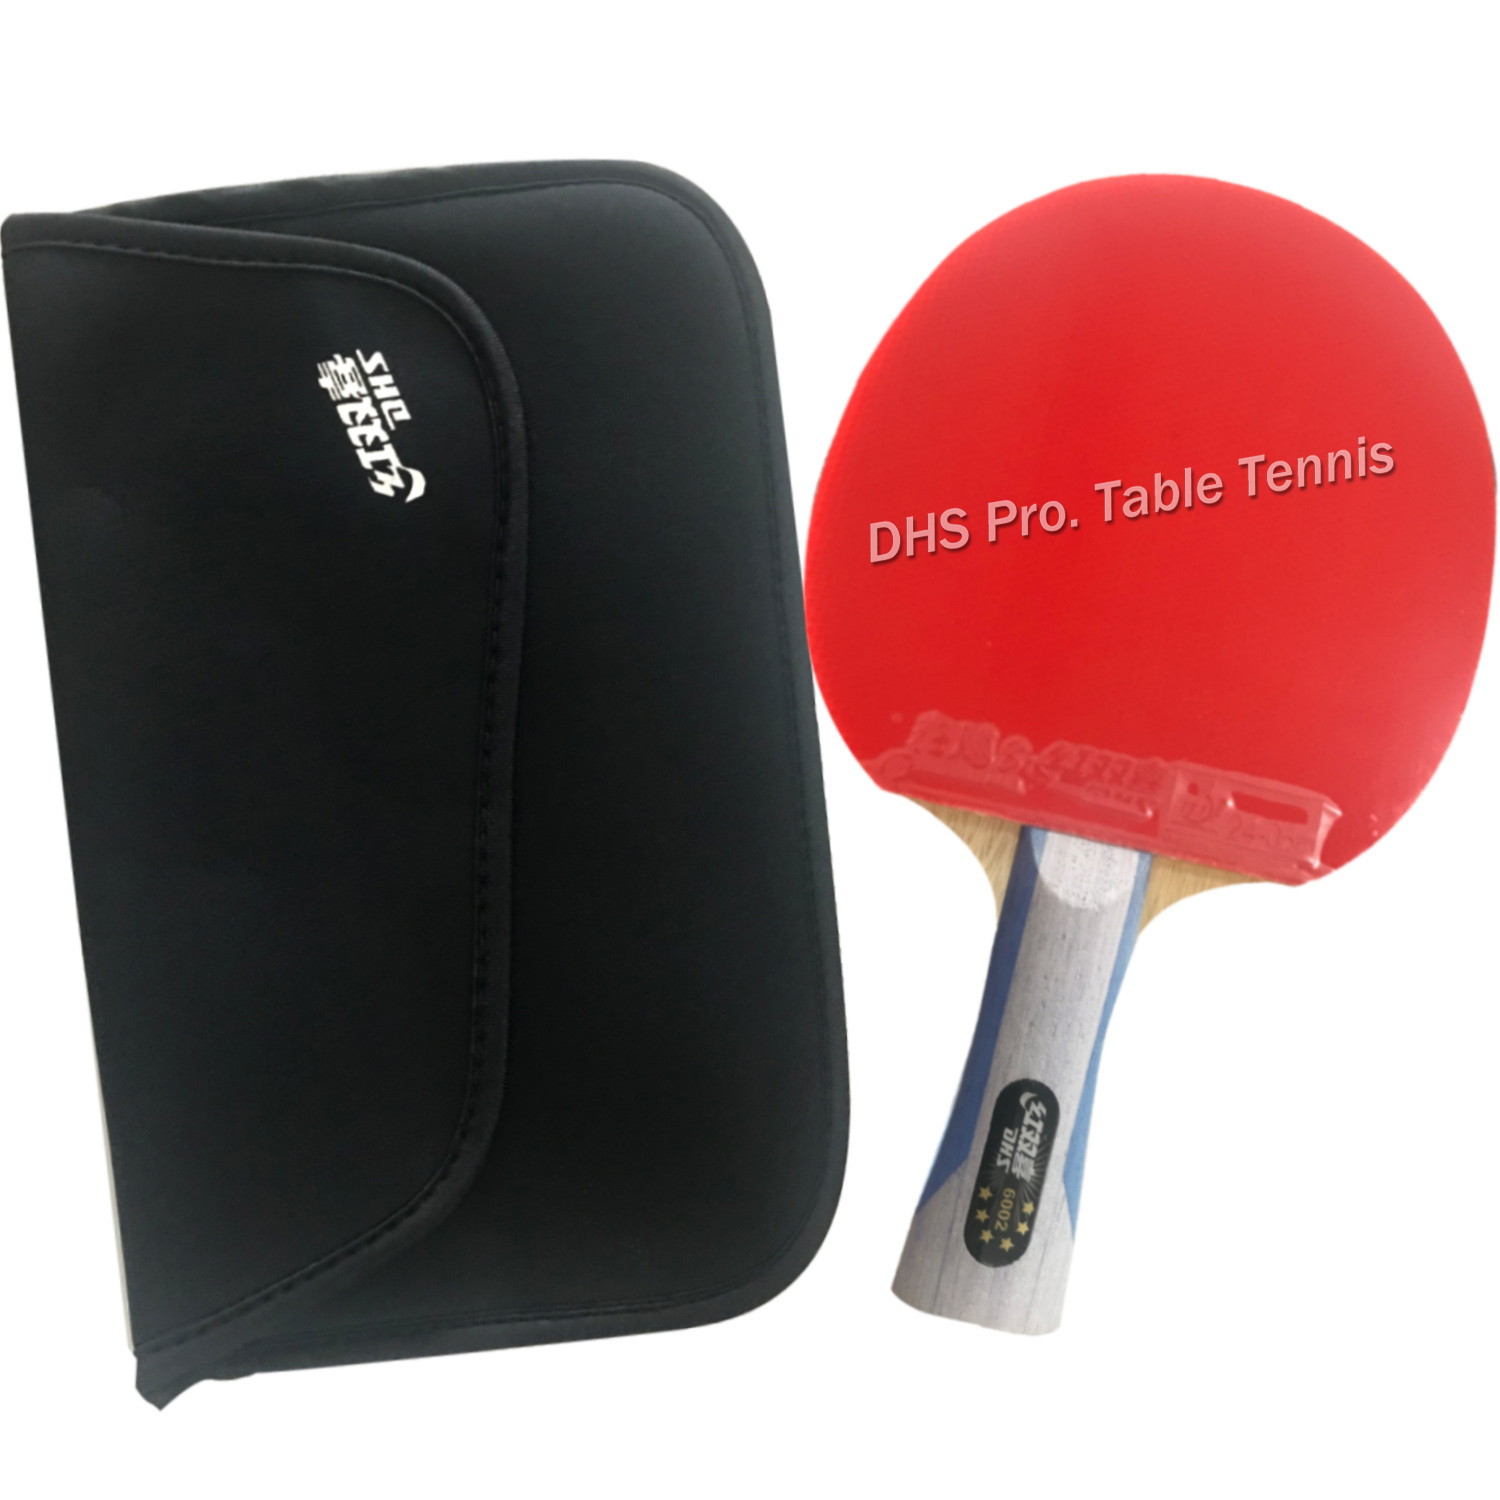 DHS 6002 Long Shakehand FL Table Tennis Ping Pong Racket + A Paddle Bag Shakehand Long Handle FL